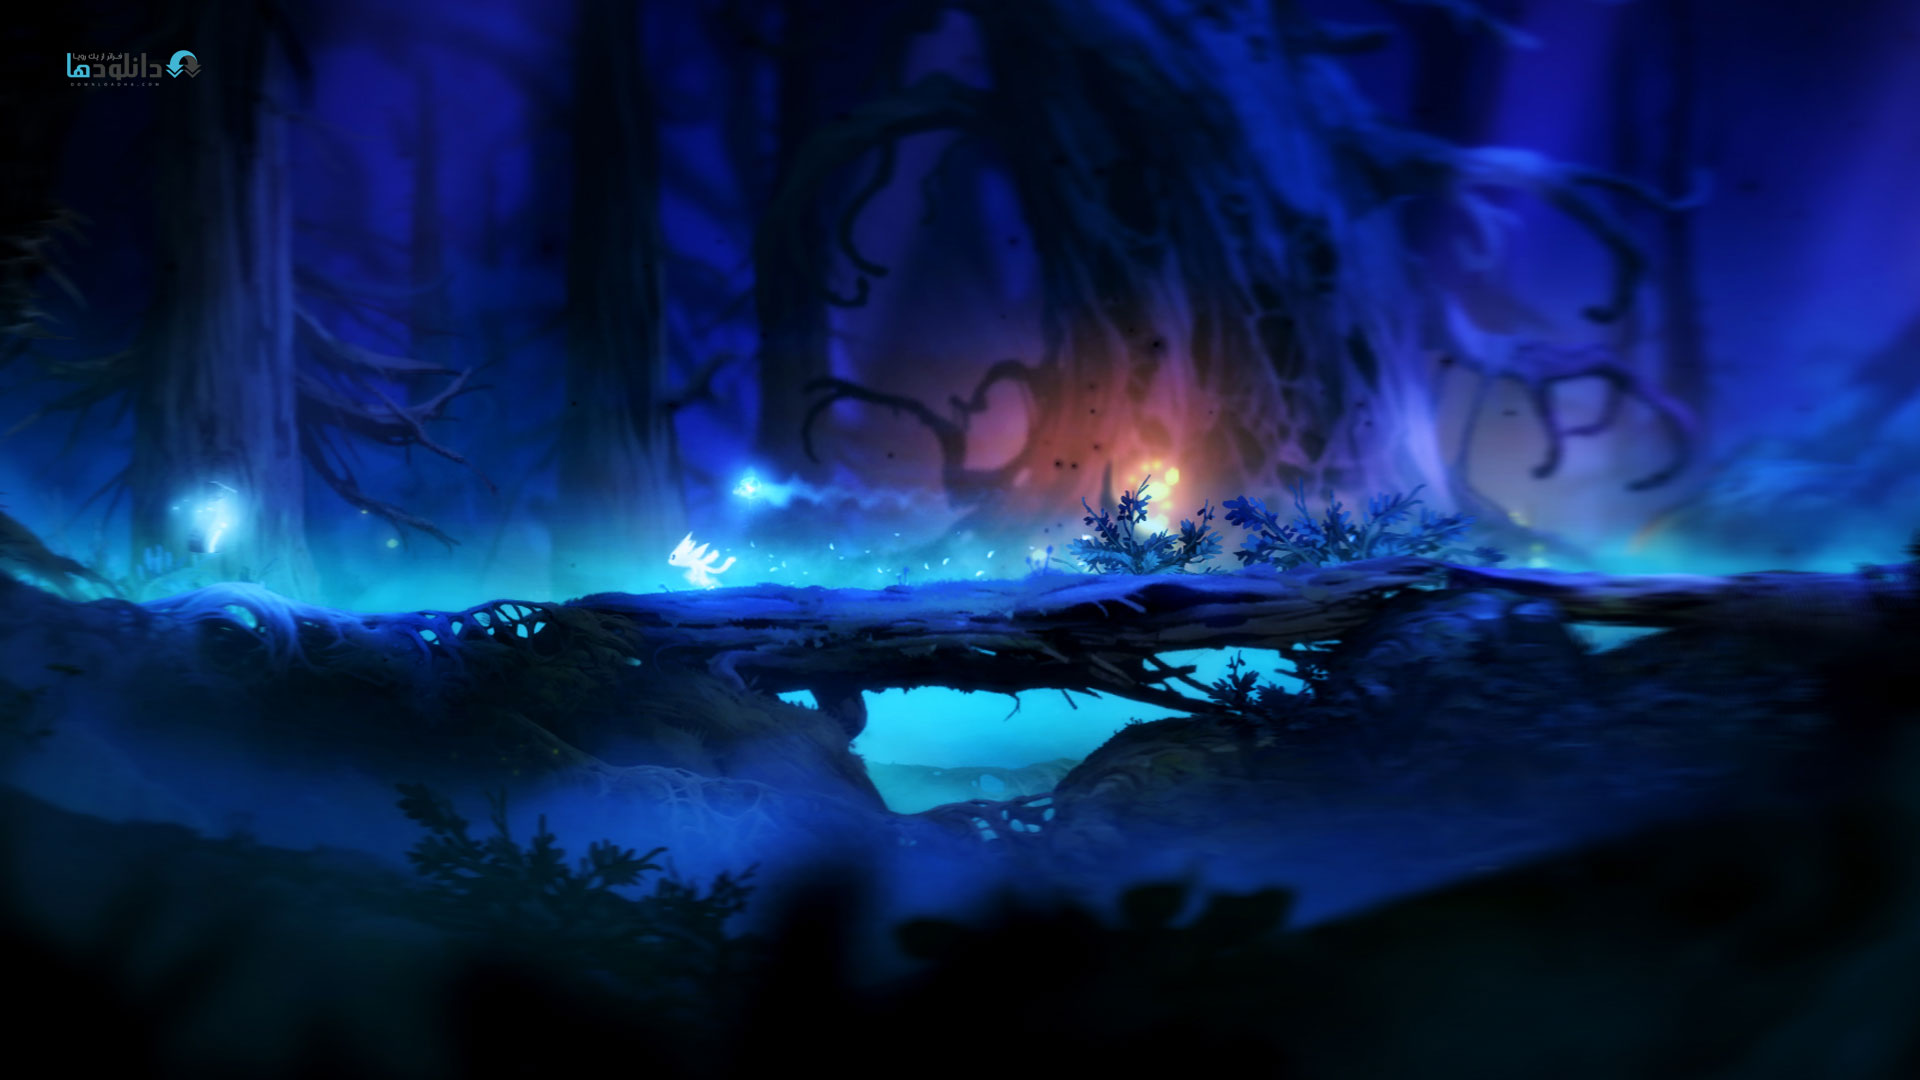 http://img5.downloadha.com/hosein/Game/March%202015/11/Ori-and-the-Blind-Forest-screenshots-03-large.jpg